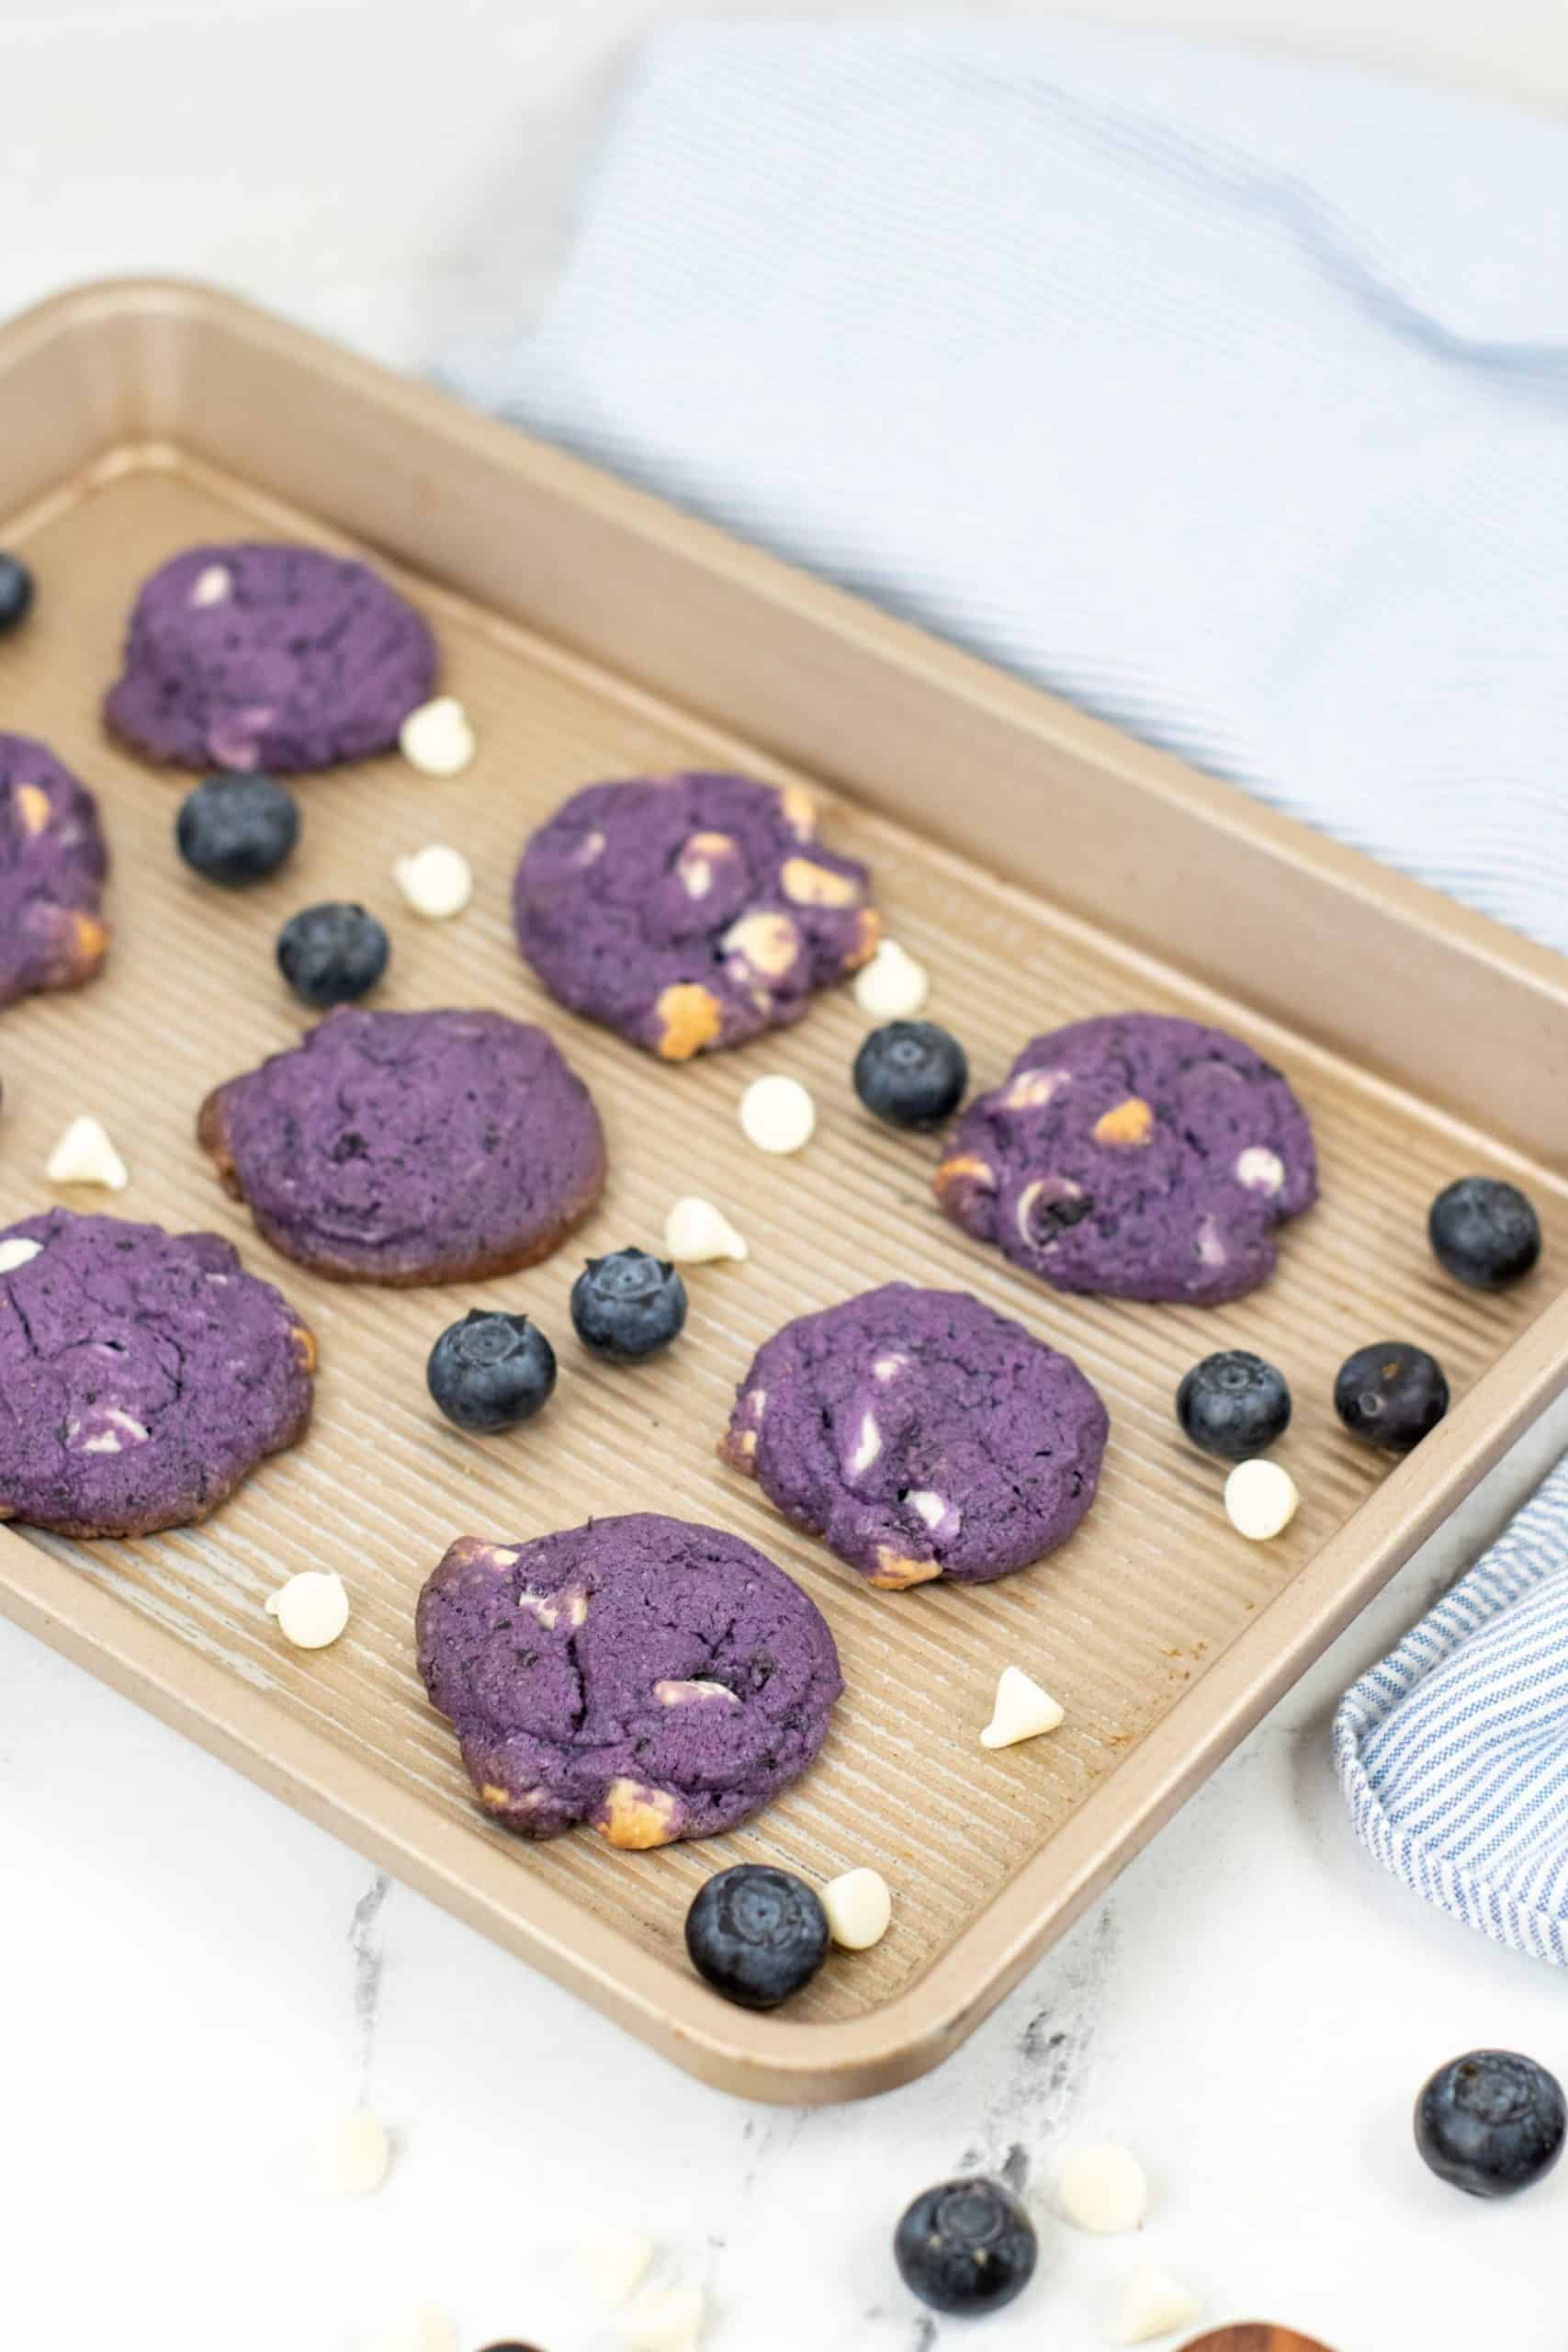 Cookie sheet with blueberry white chocolate cookies with blueberries and chips.